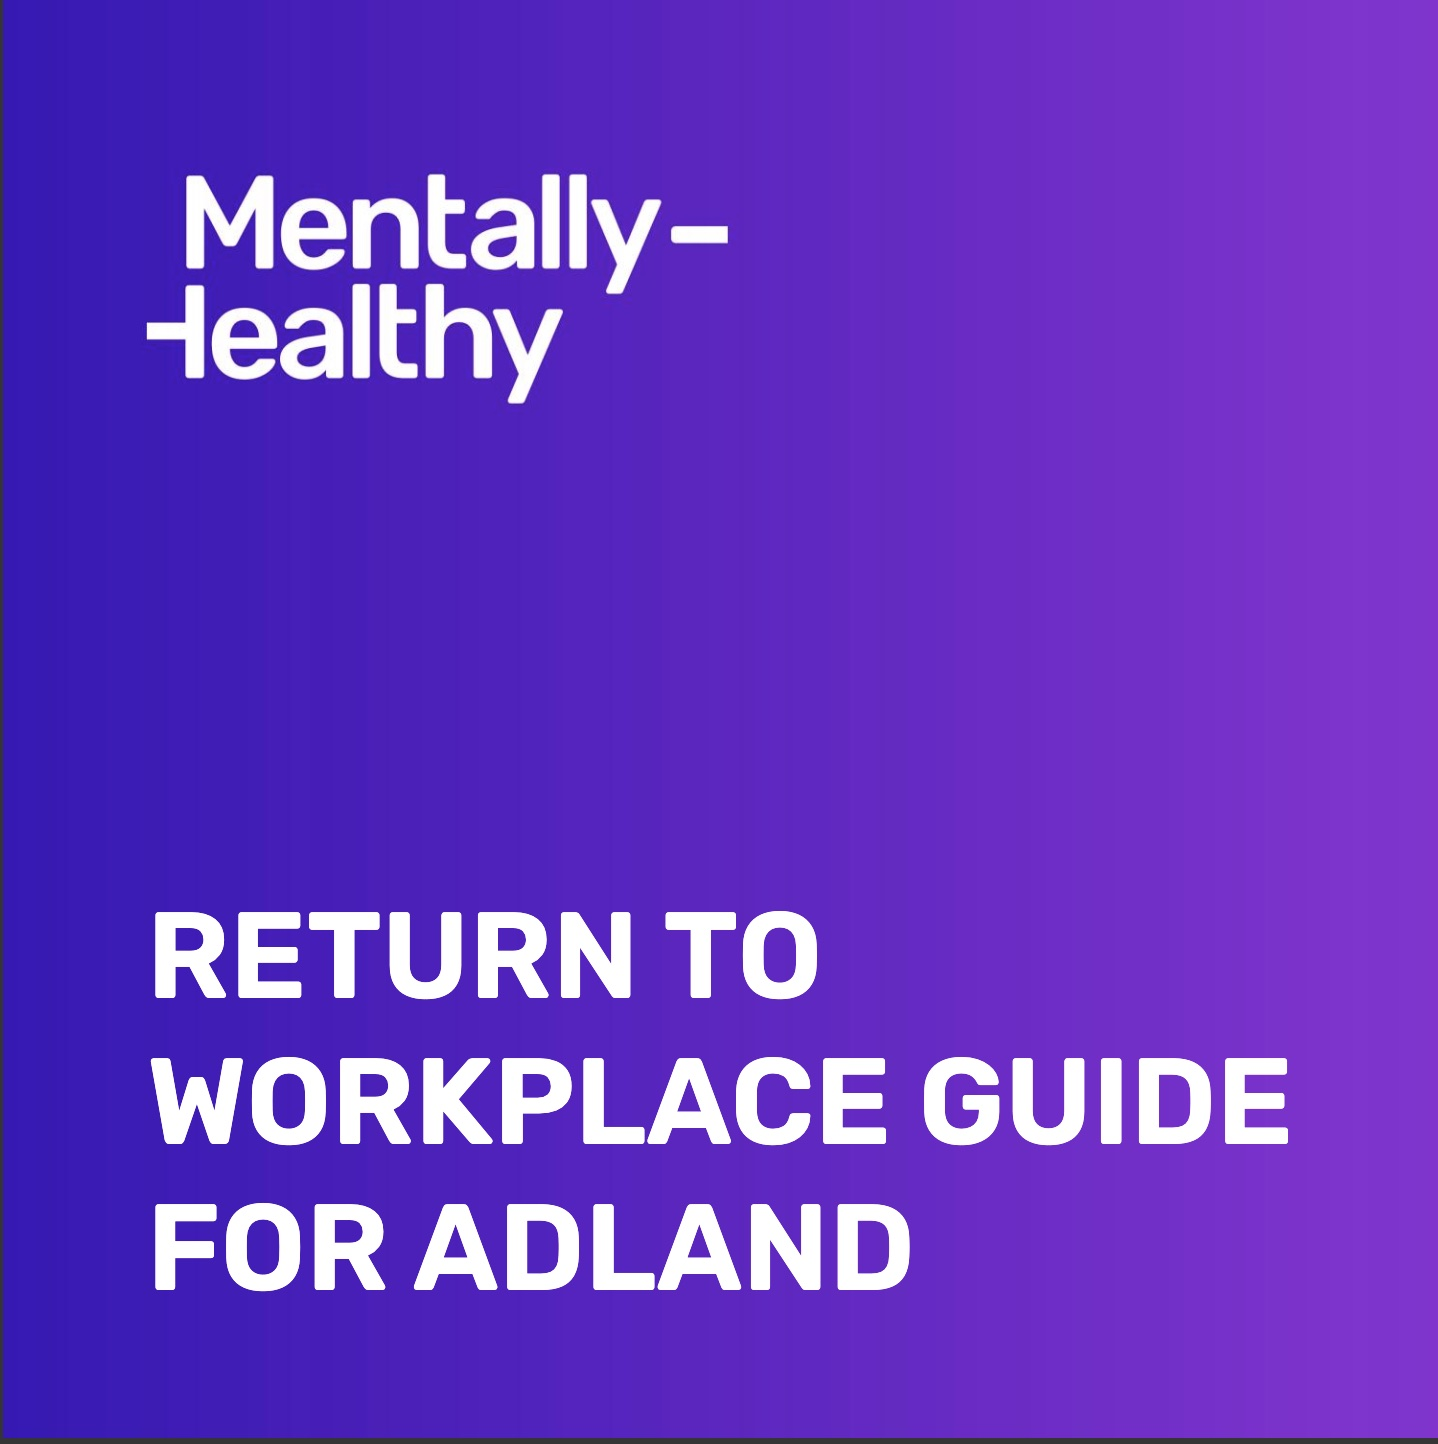 Industry leaders + mental health experts tackle 'return to workplace' challenges in new ebook